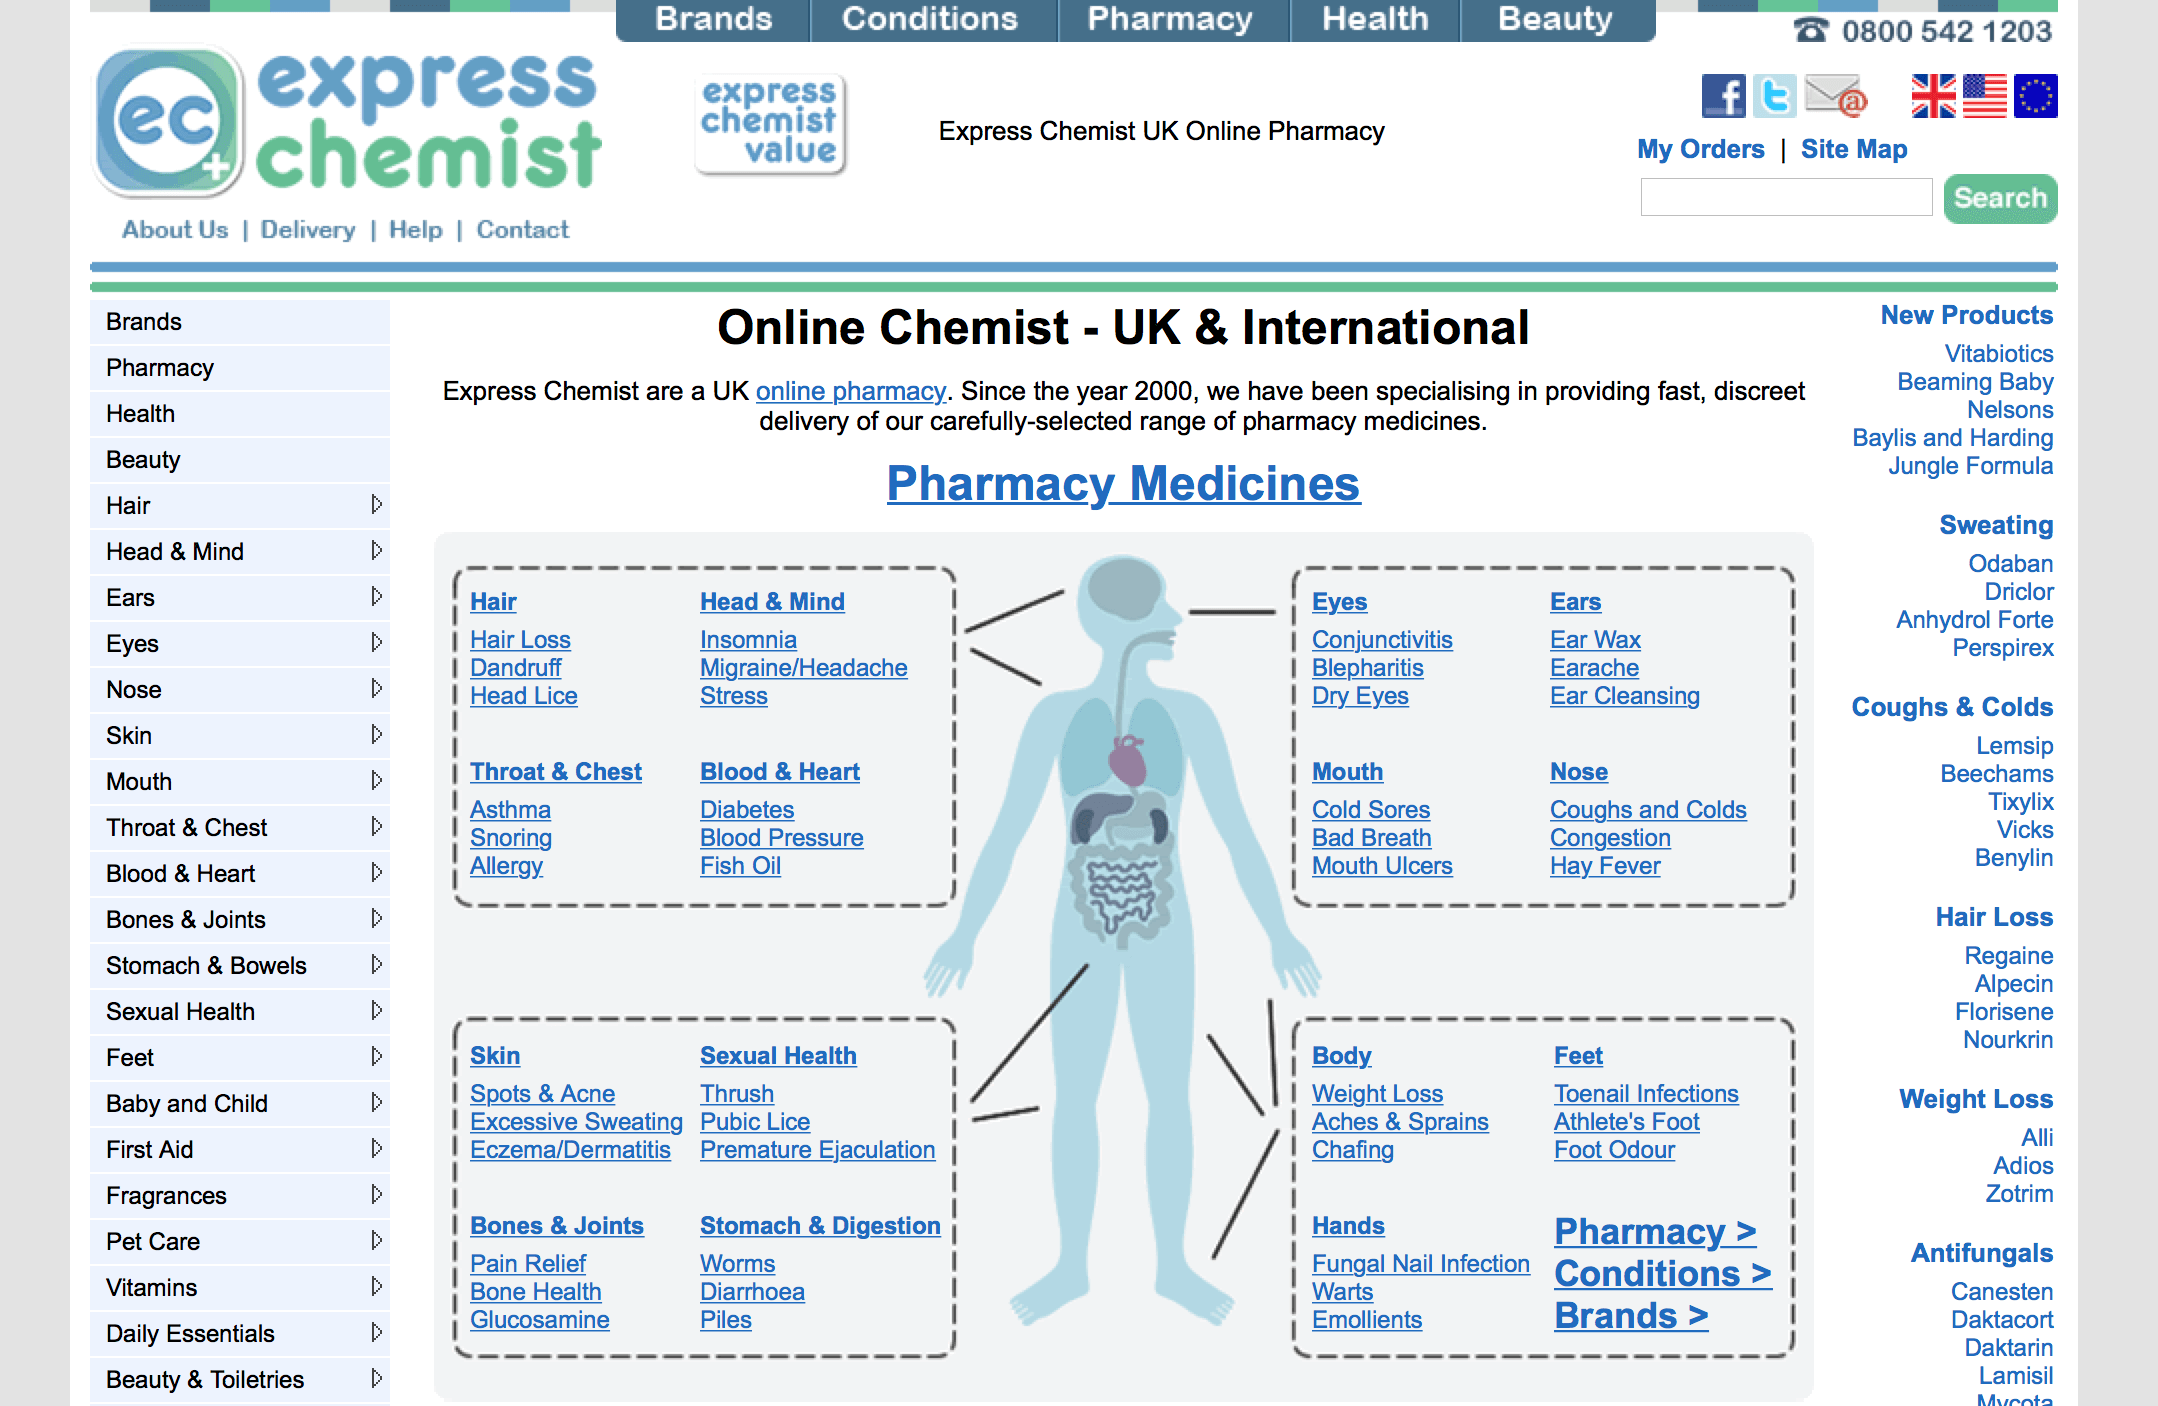 ExpressChemist.co.uk Pharmacy Review